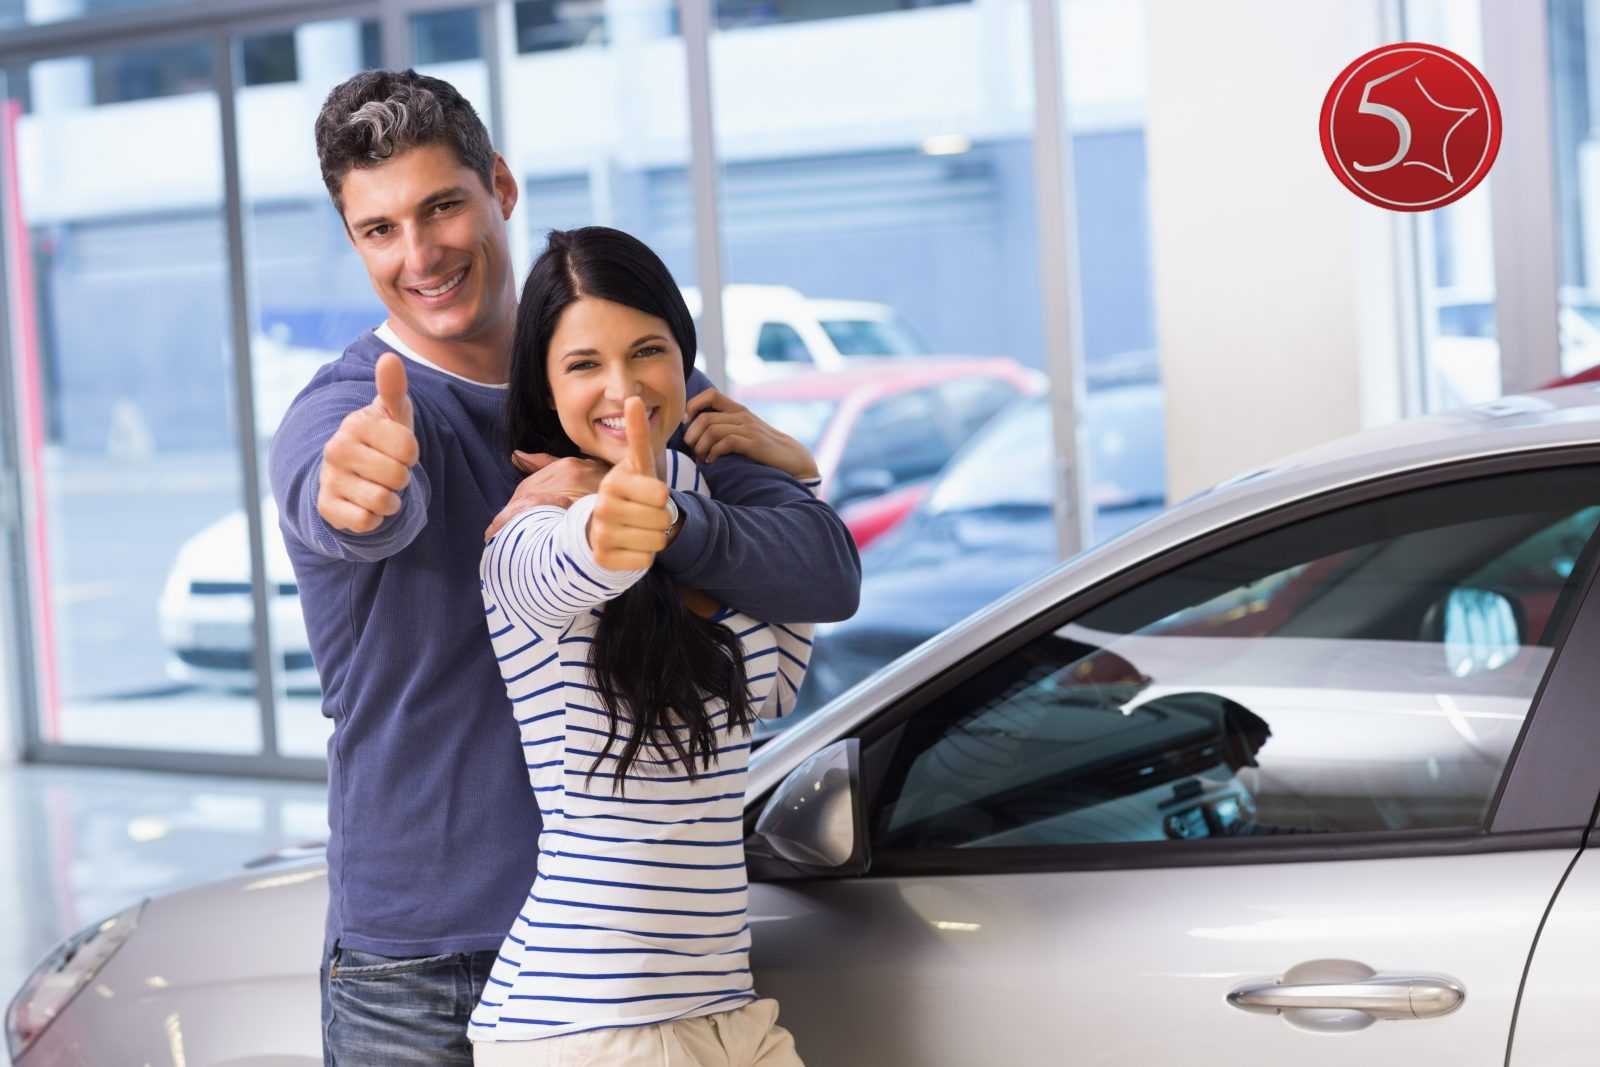 Buy Used from a Qualified Auto Dealer in St. Peters